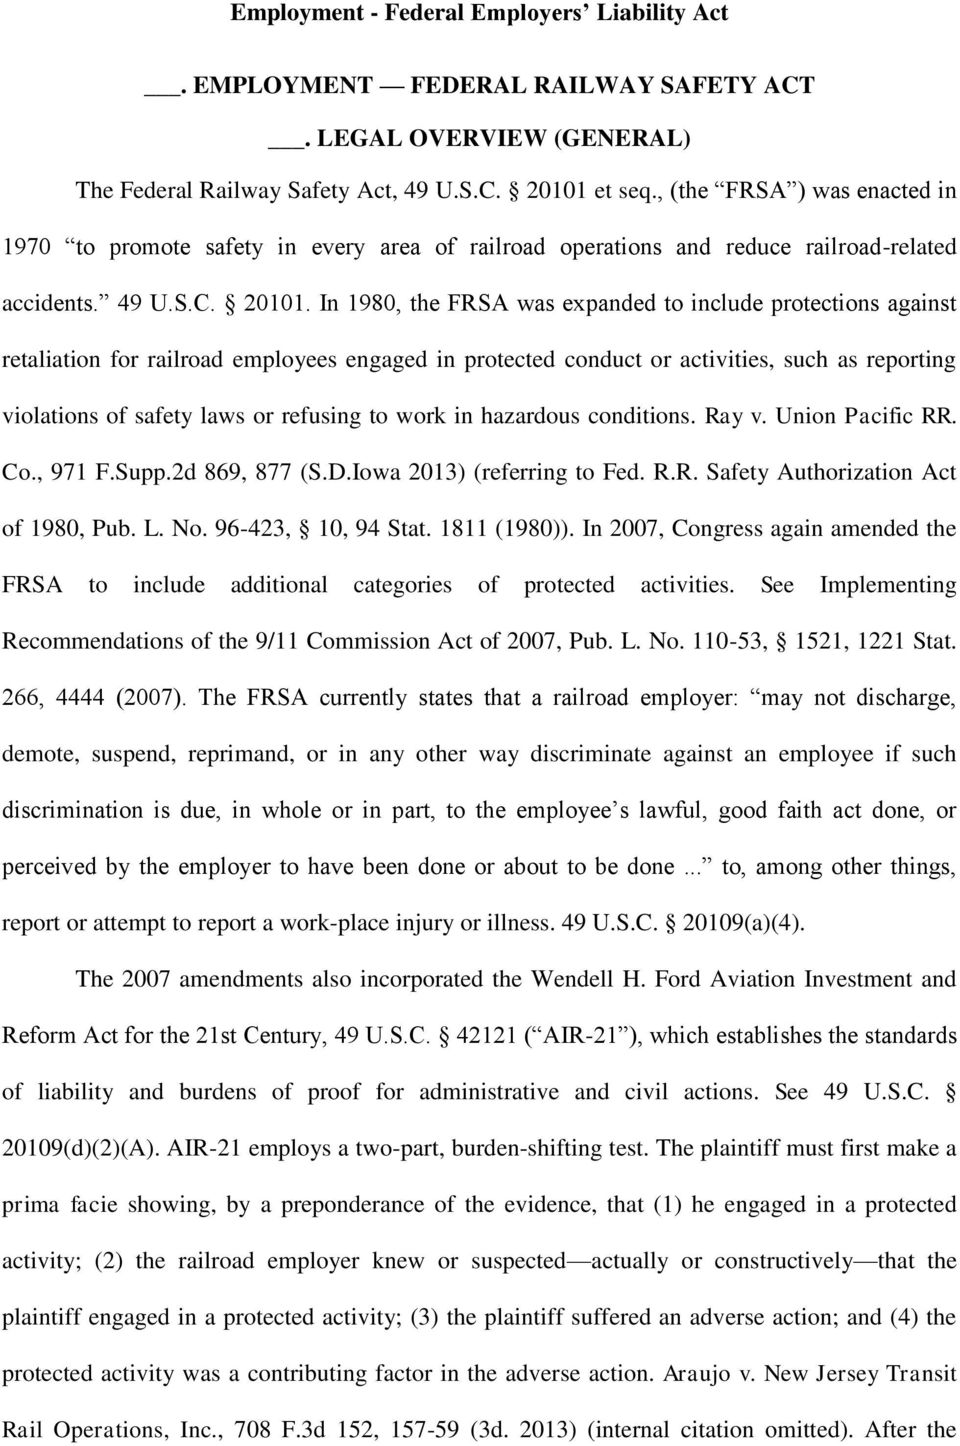 In 1980, the FRSA was expanded to include protections against retaliation for railroad employees engaged in protected conduct or activities, such as reporting violations of safety laws or refusing to